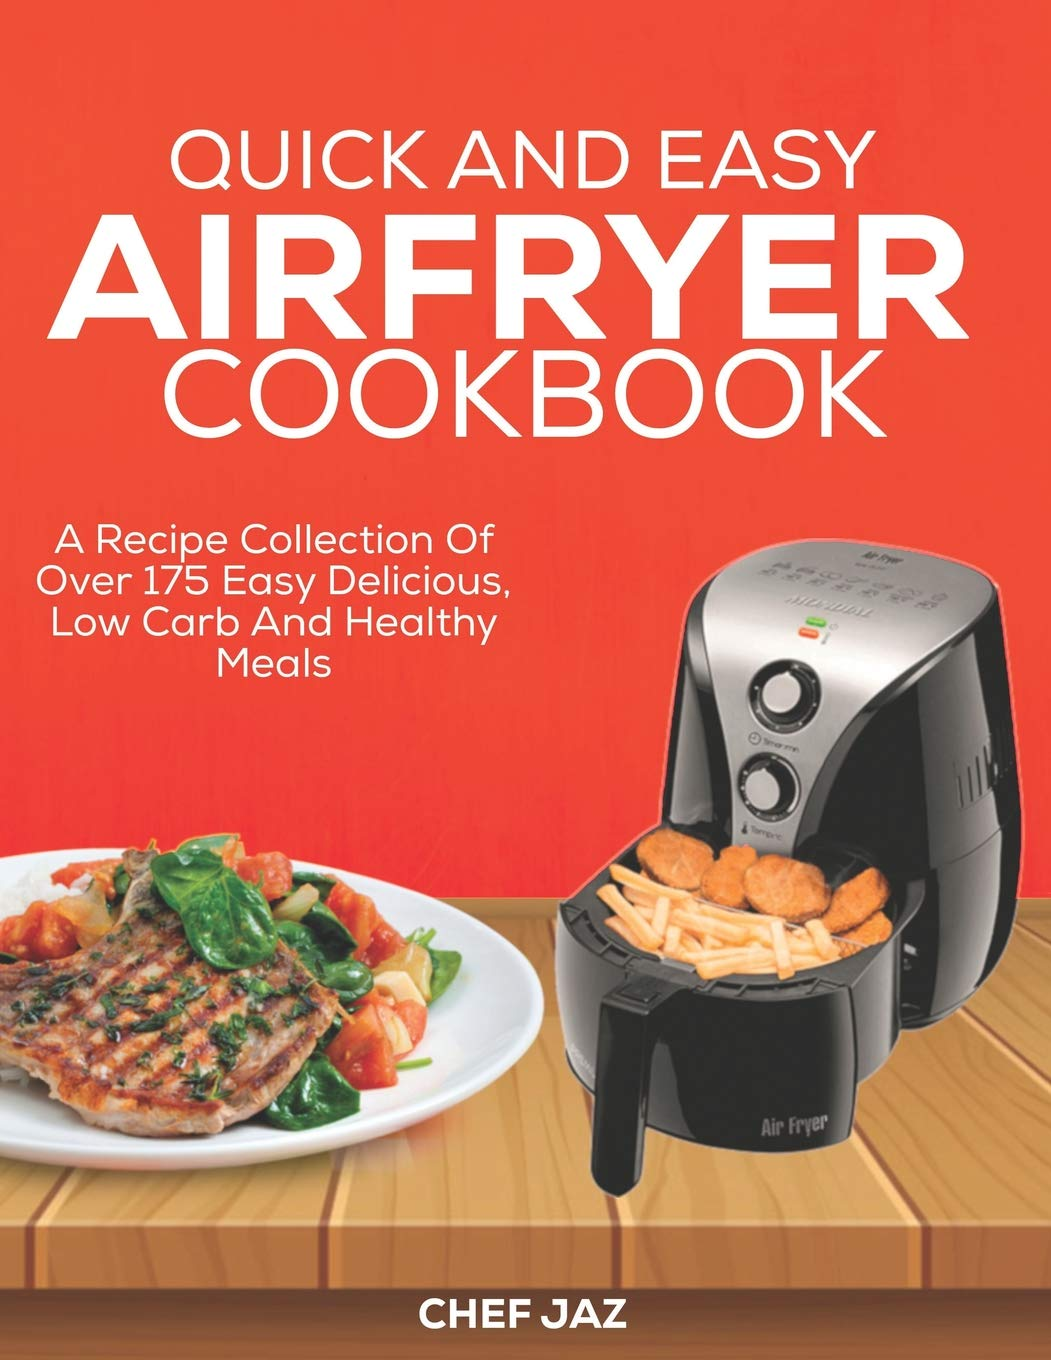 Quick And Easy Airfryer Cookbook  A Recipe Collection Of Over 175 Easy DeliciousLow Carb And Healthy Meals